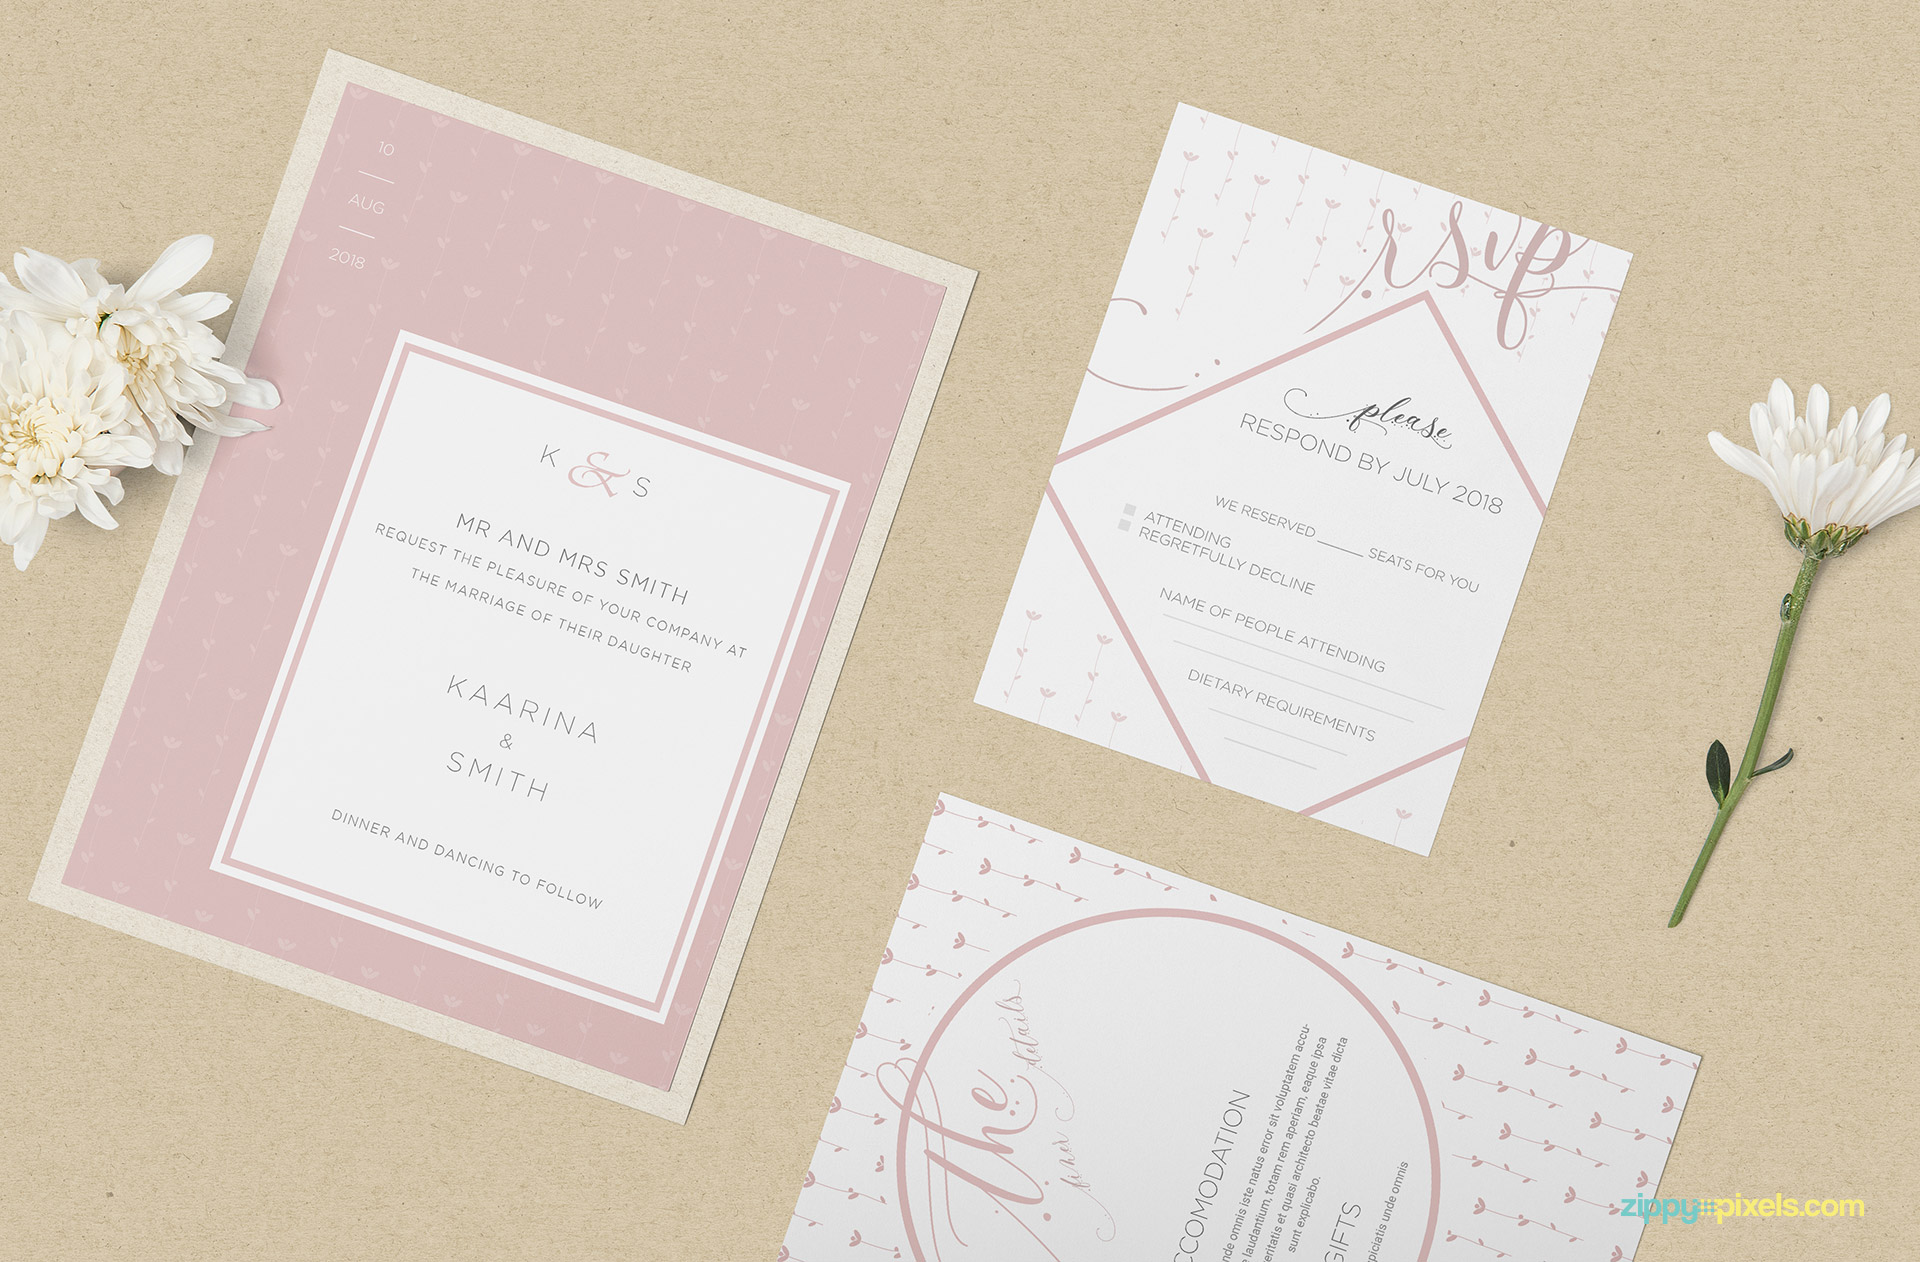 Three gorgeous wedding cards mockup.